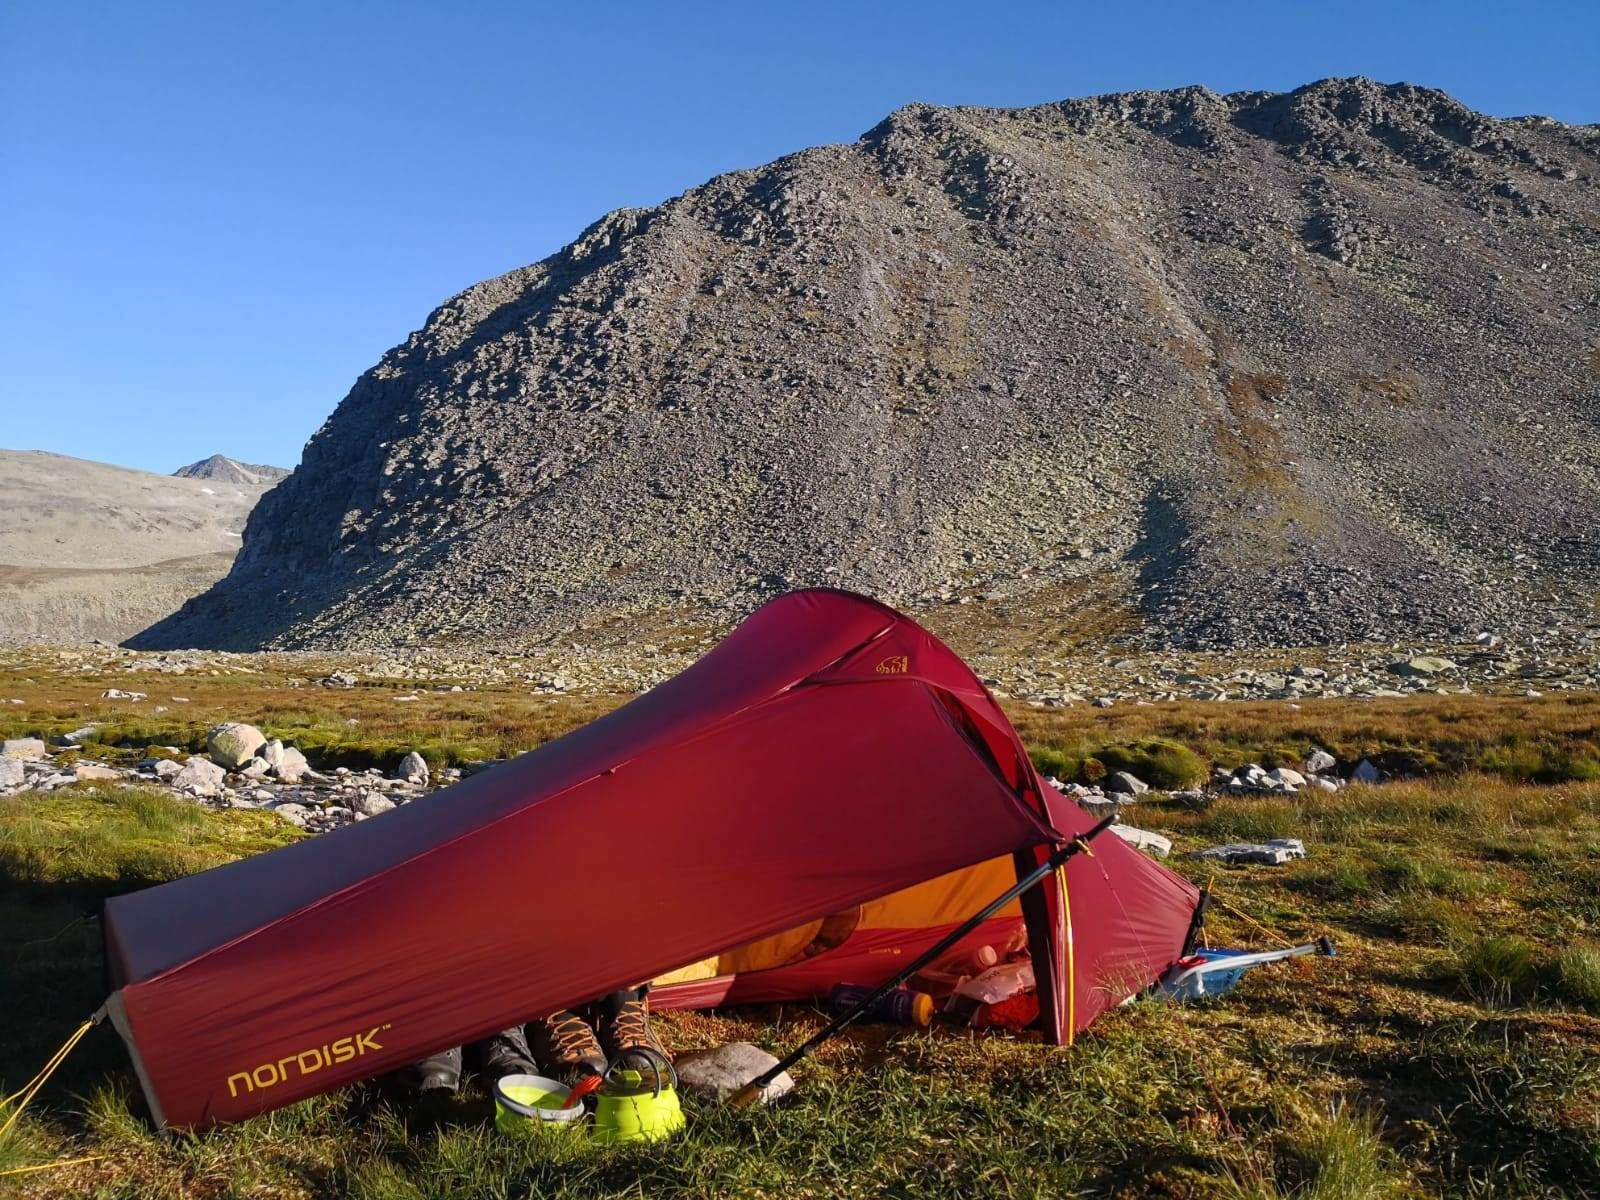 Our guide Chris uses a Nordisk sub-1kg tent on his Fastpack adventures